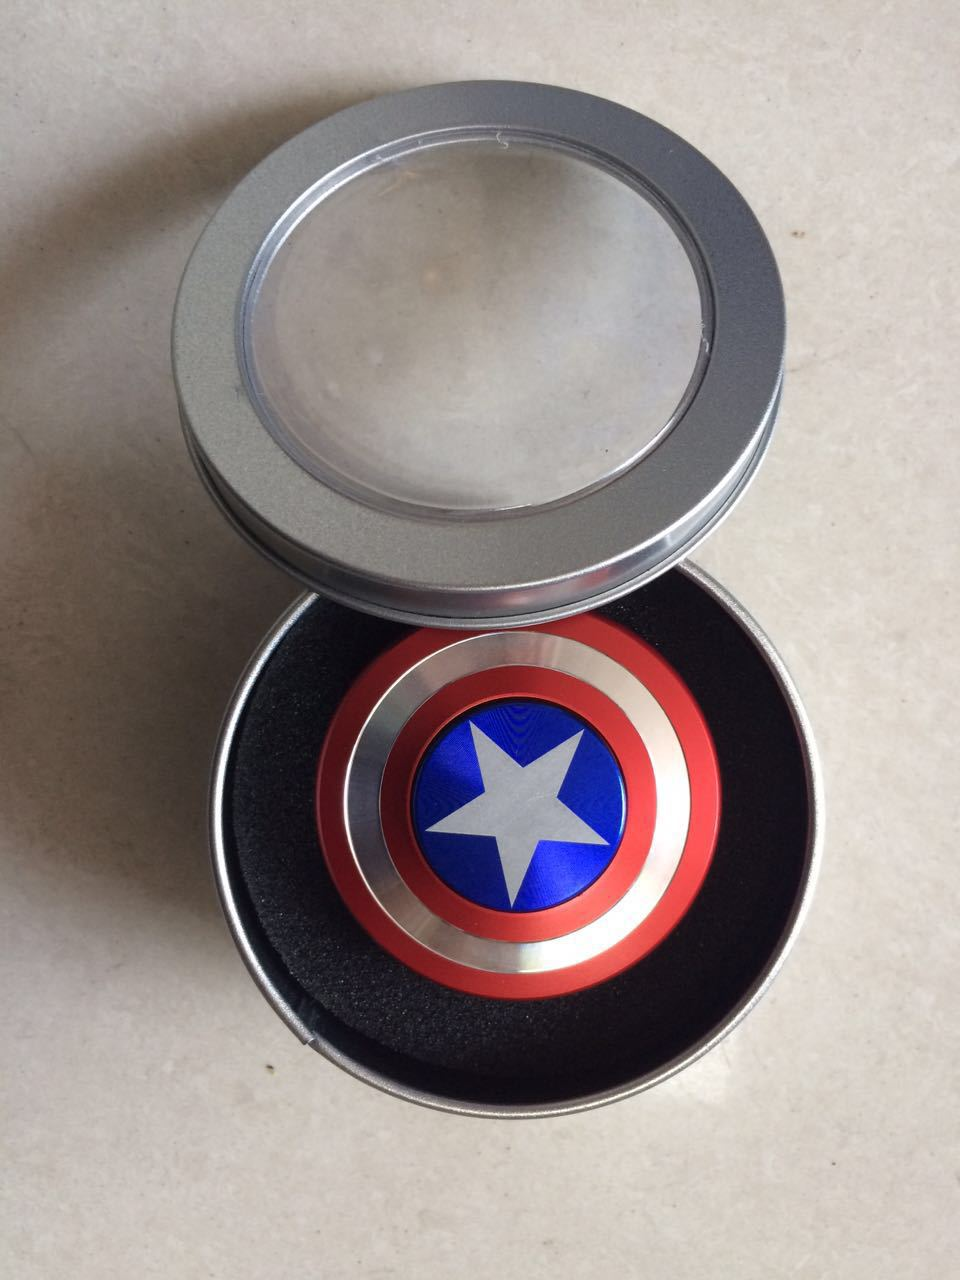 2017 American Captain Edc Tri Spinner Fidget Toys Hand Metal Mainan 3 Circle Arms For Adults Children Educational Hobbies In From